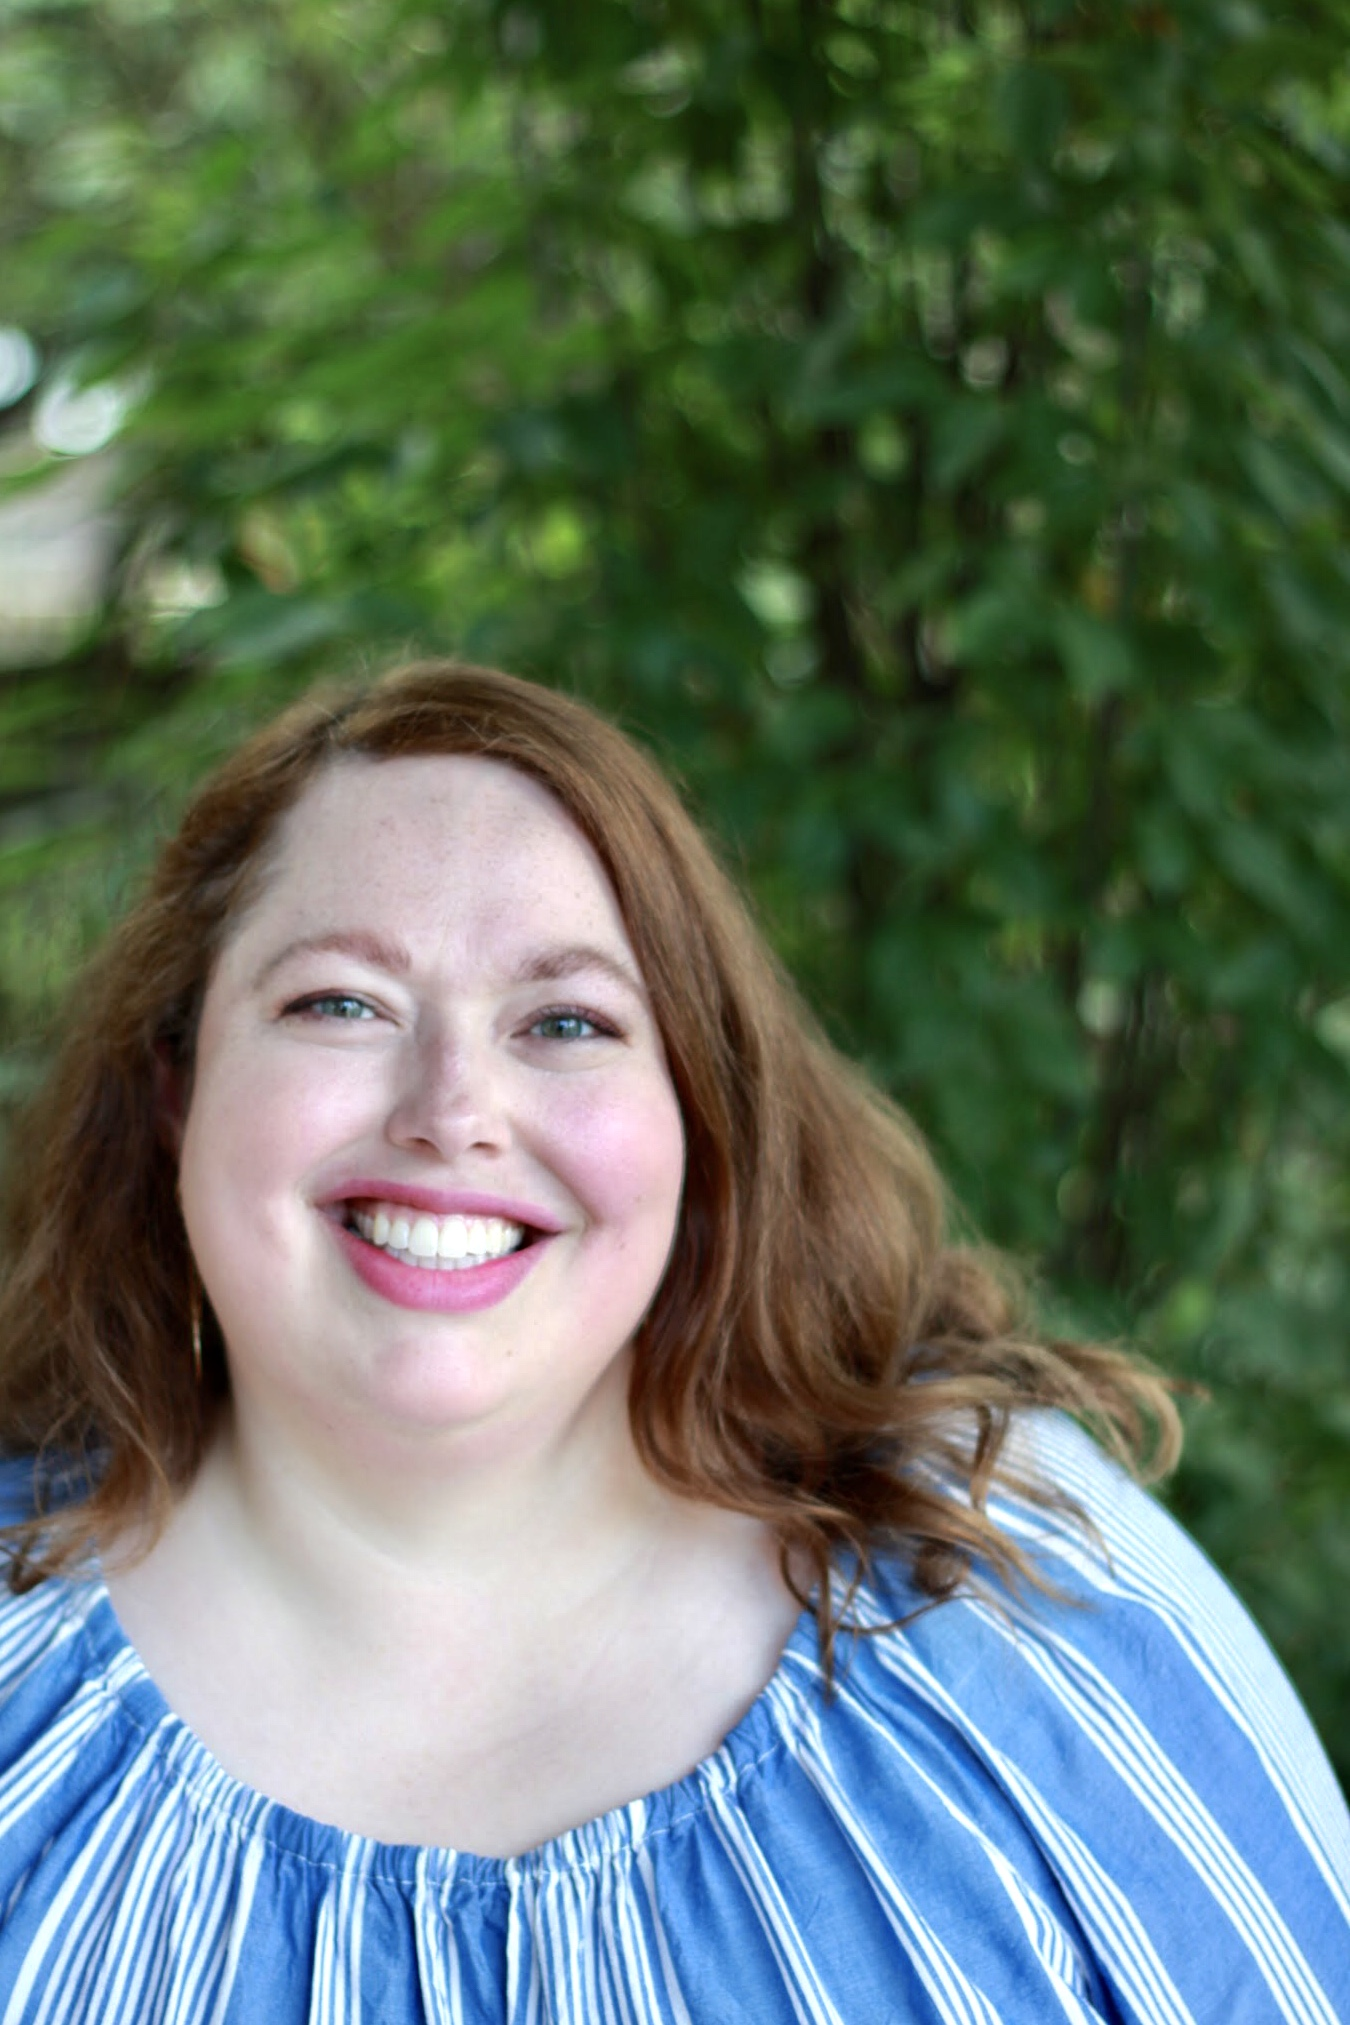 Anna Beth Blevins, MBA - Anna Beth is the Director of First Impressions and Client Care Coordinator at Nashville Nutrition Partners. Communication is the focus of her work, whether that is welcoming patients, conducting insight sessions, or working on marketing materials for the practice.